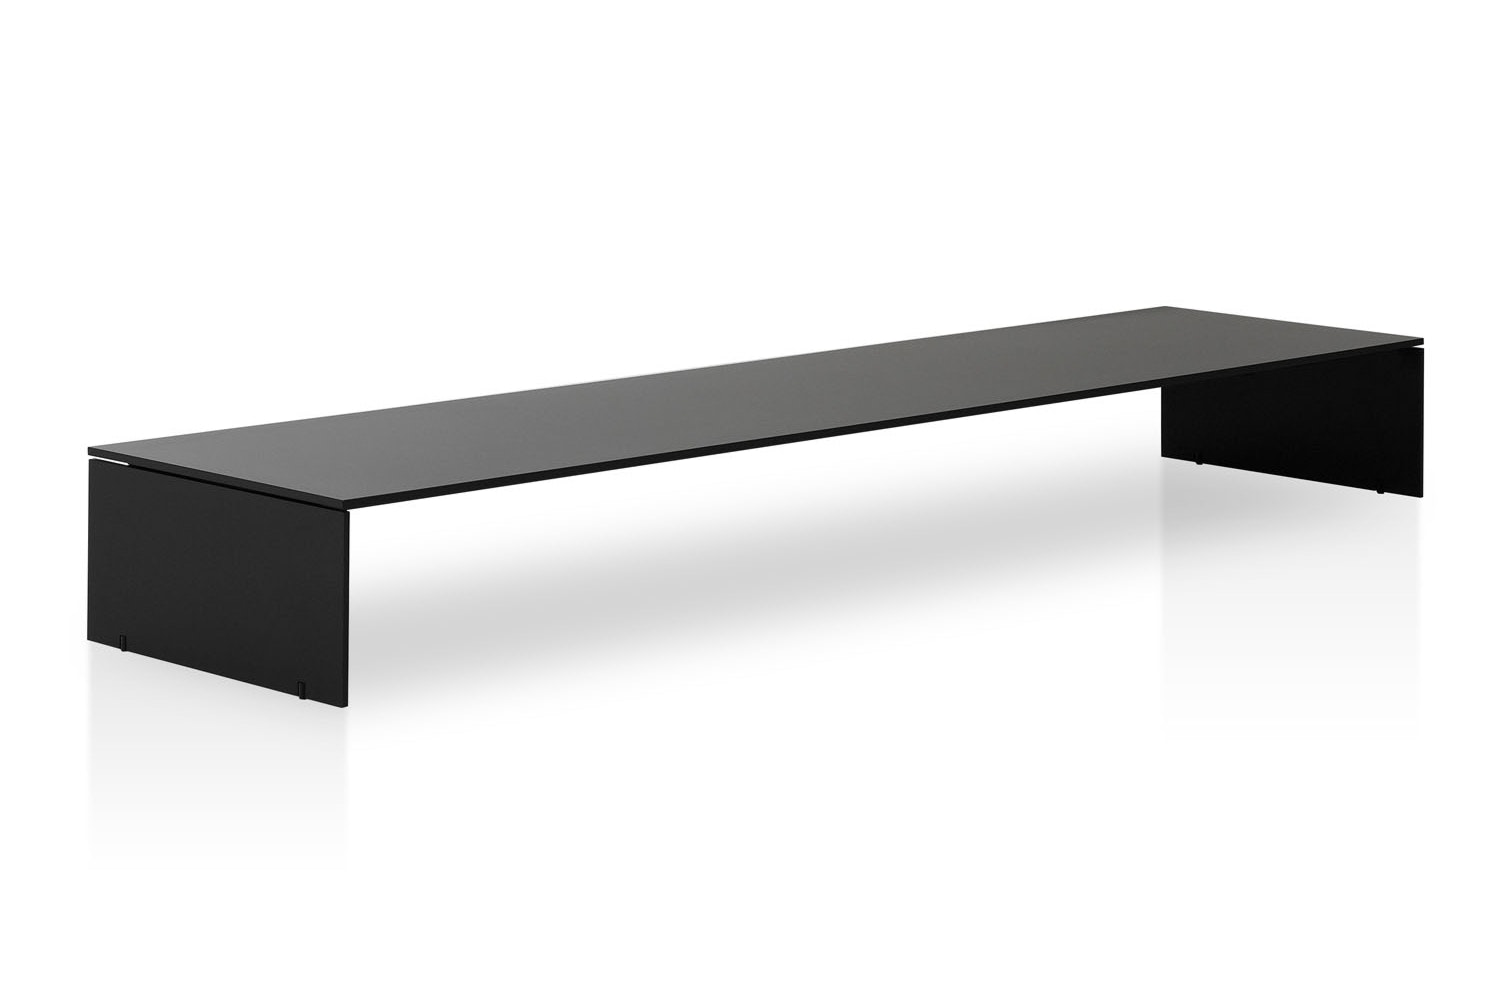 Modern Light Bench by Piero Lissoni for Porro